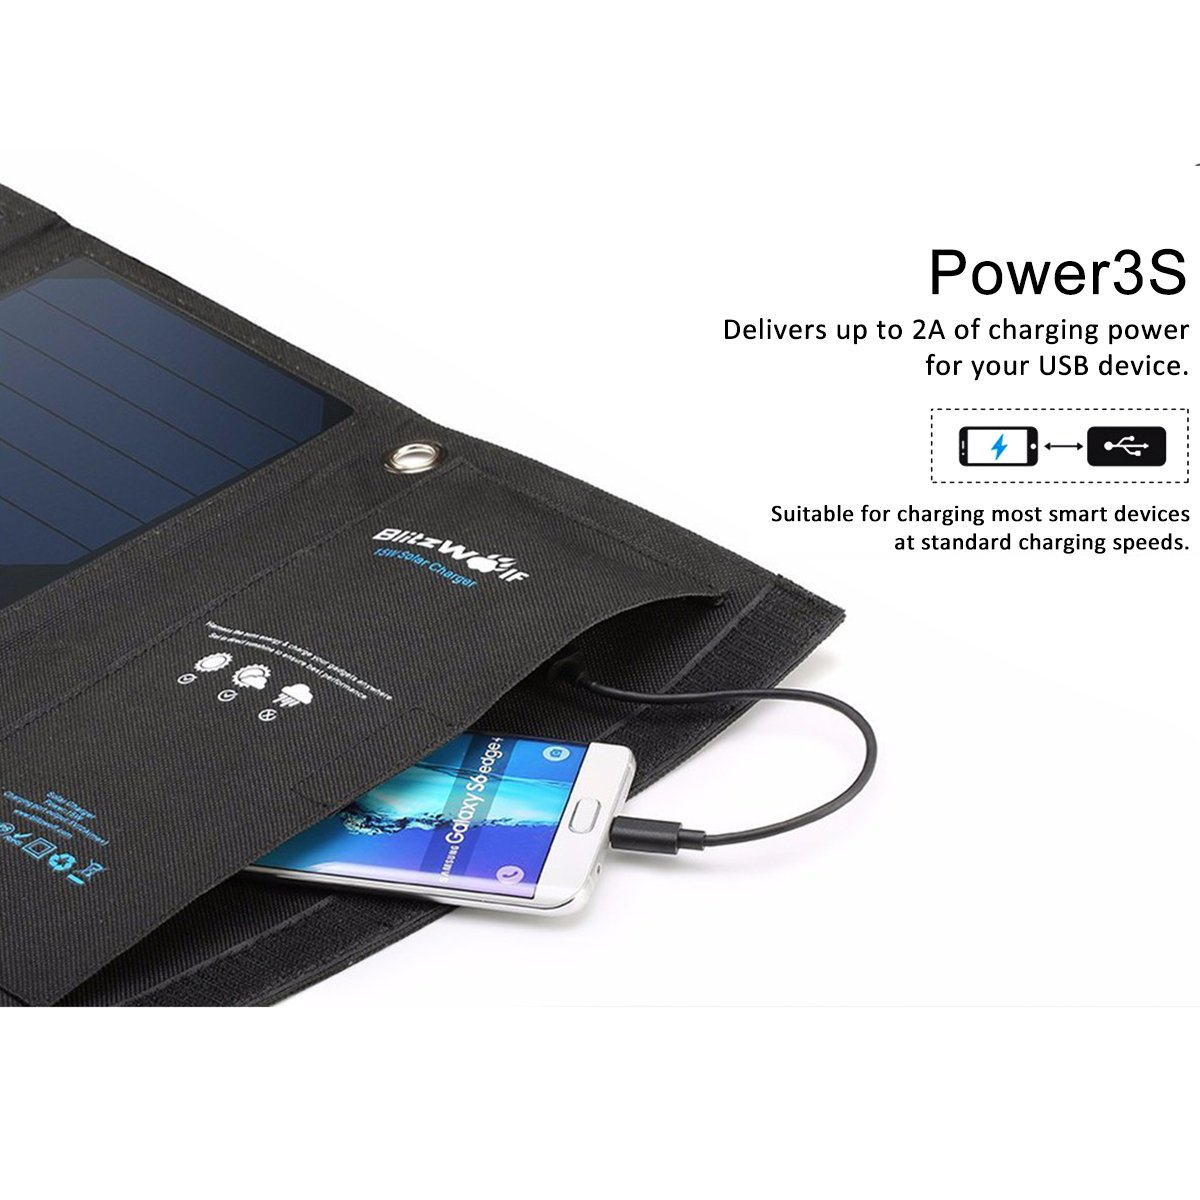 BlitzWolf 15W Solar Charger Portable Dual USB Port for iPhone X 8 Plus 7 6 6s Plus, Samsung Galaxy S8 S7 S6 Edge, Android Powered Foldable Panel Water Resistant High-Efficiency SunPower Charger by BlitzWolf (Image #7)